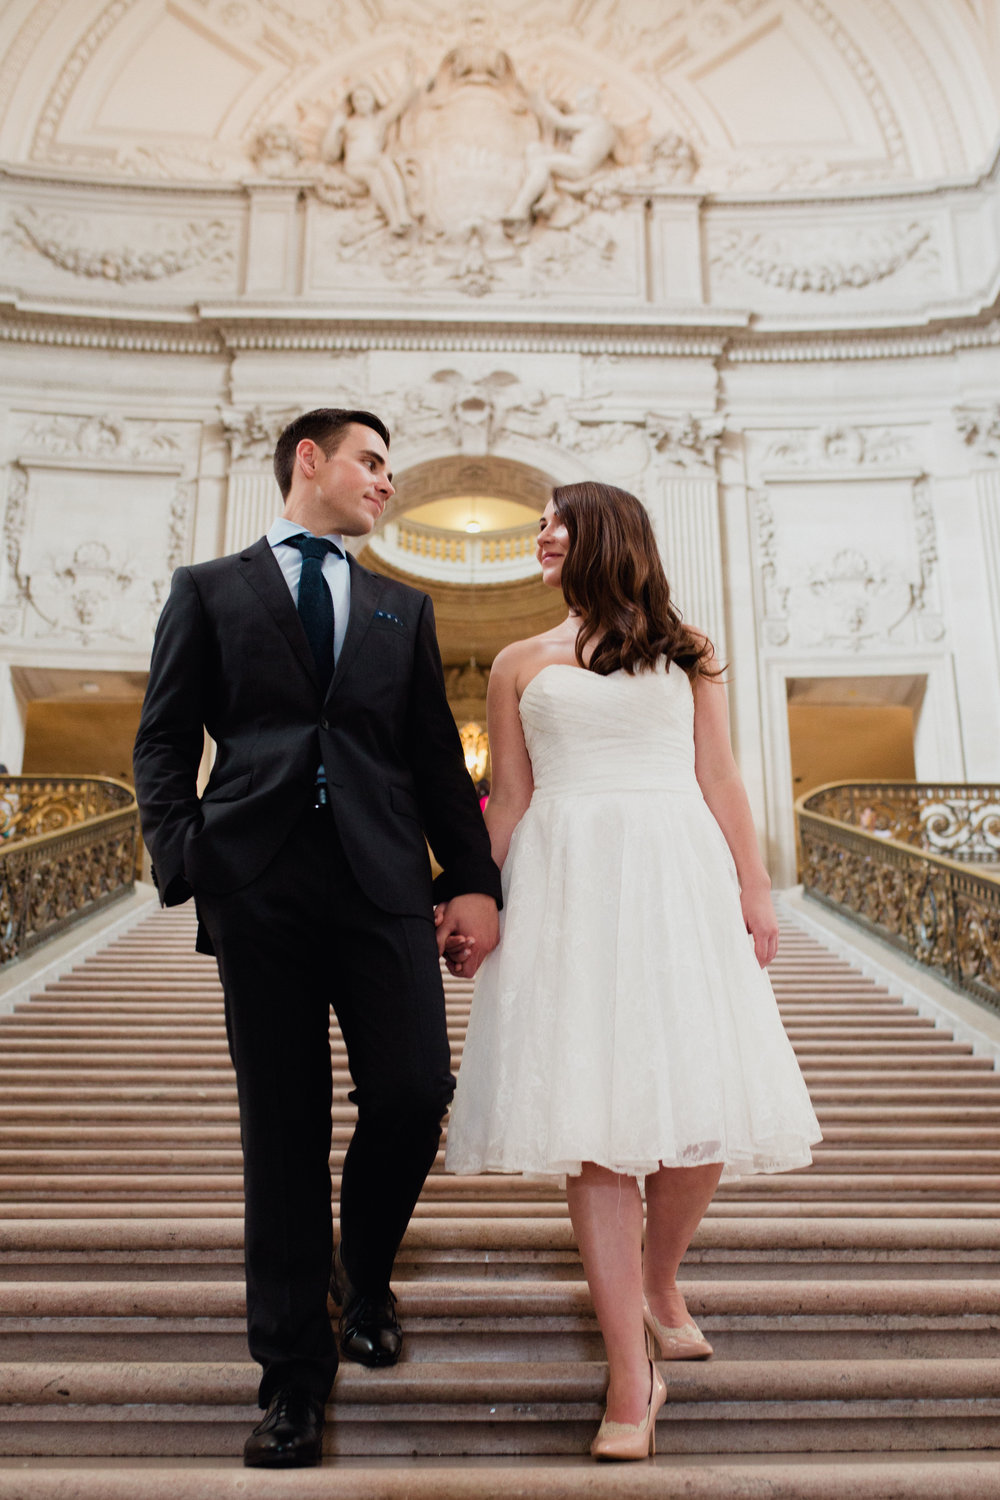 Copy of Walking down the grand stairwell at Sf City Hall